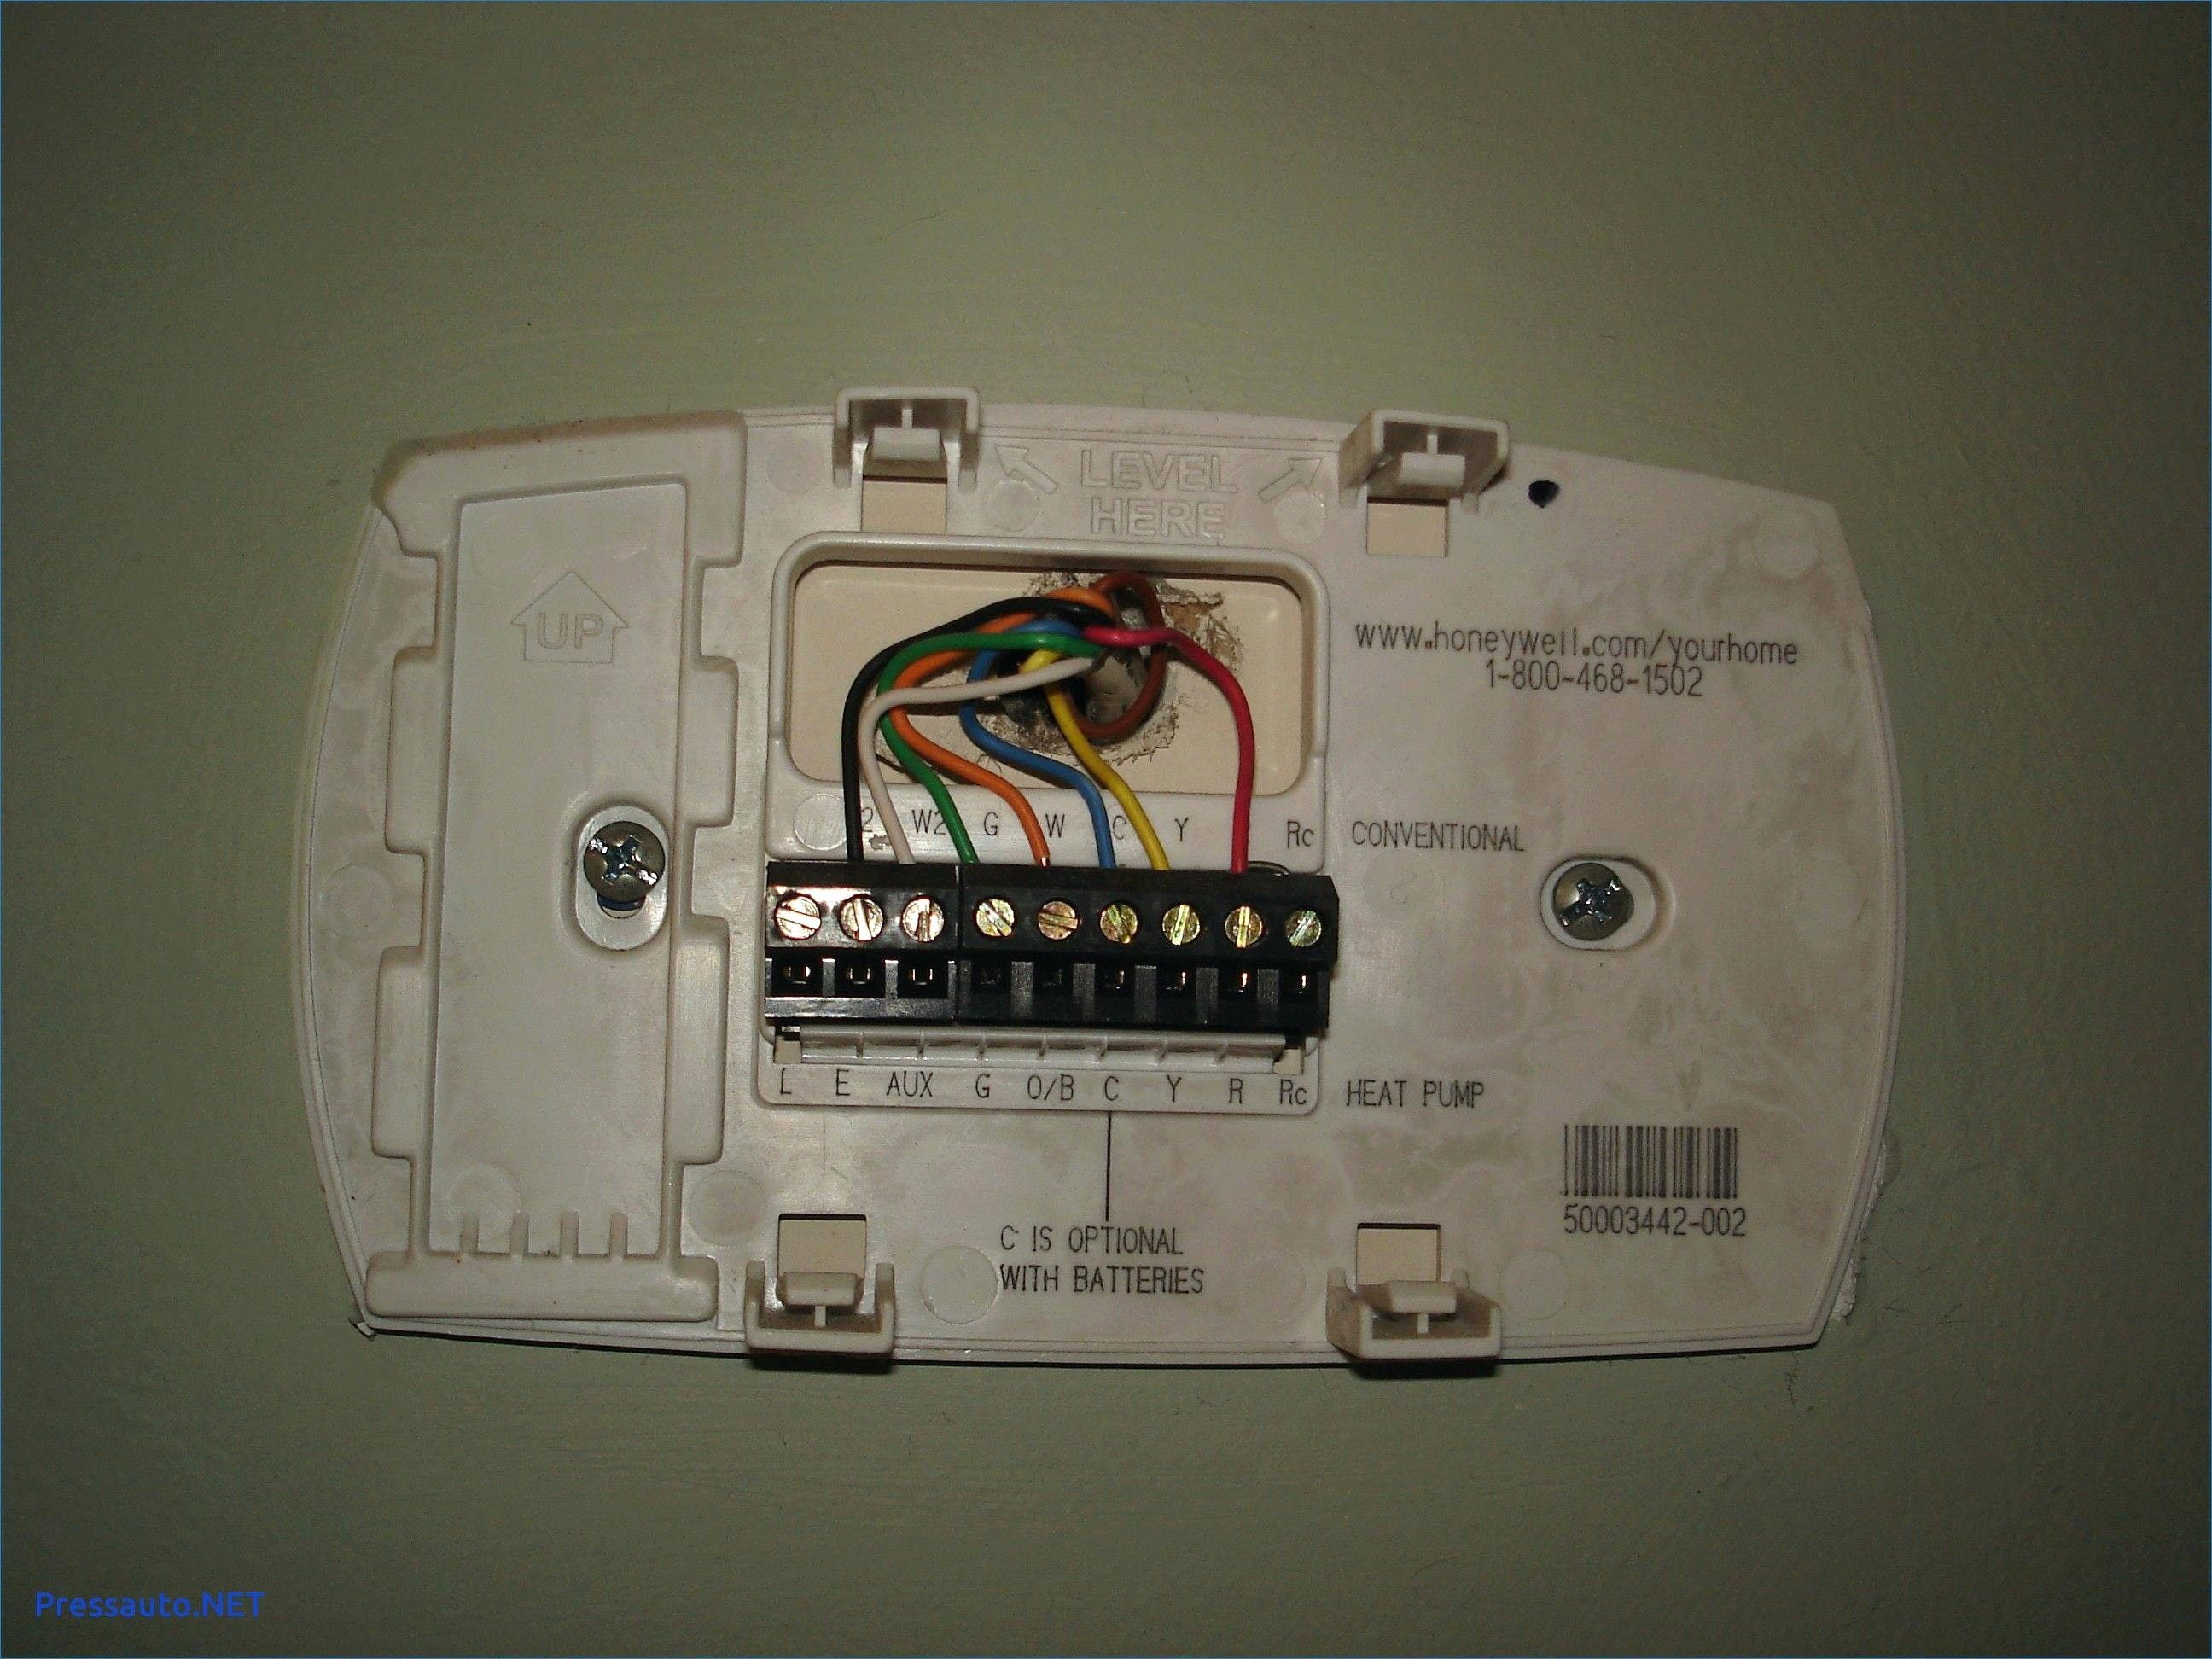 hight resolution of honeywell rth2300 thermostat wiring diagram wiring diagram name honeywell thermostat rth221b wiring diagram honeywell rth221 wiring diagram